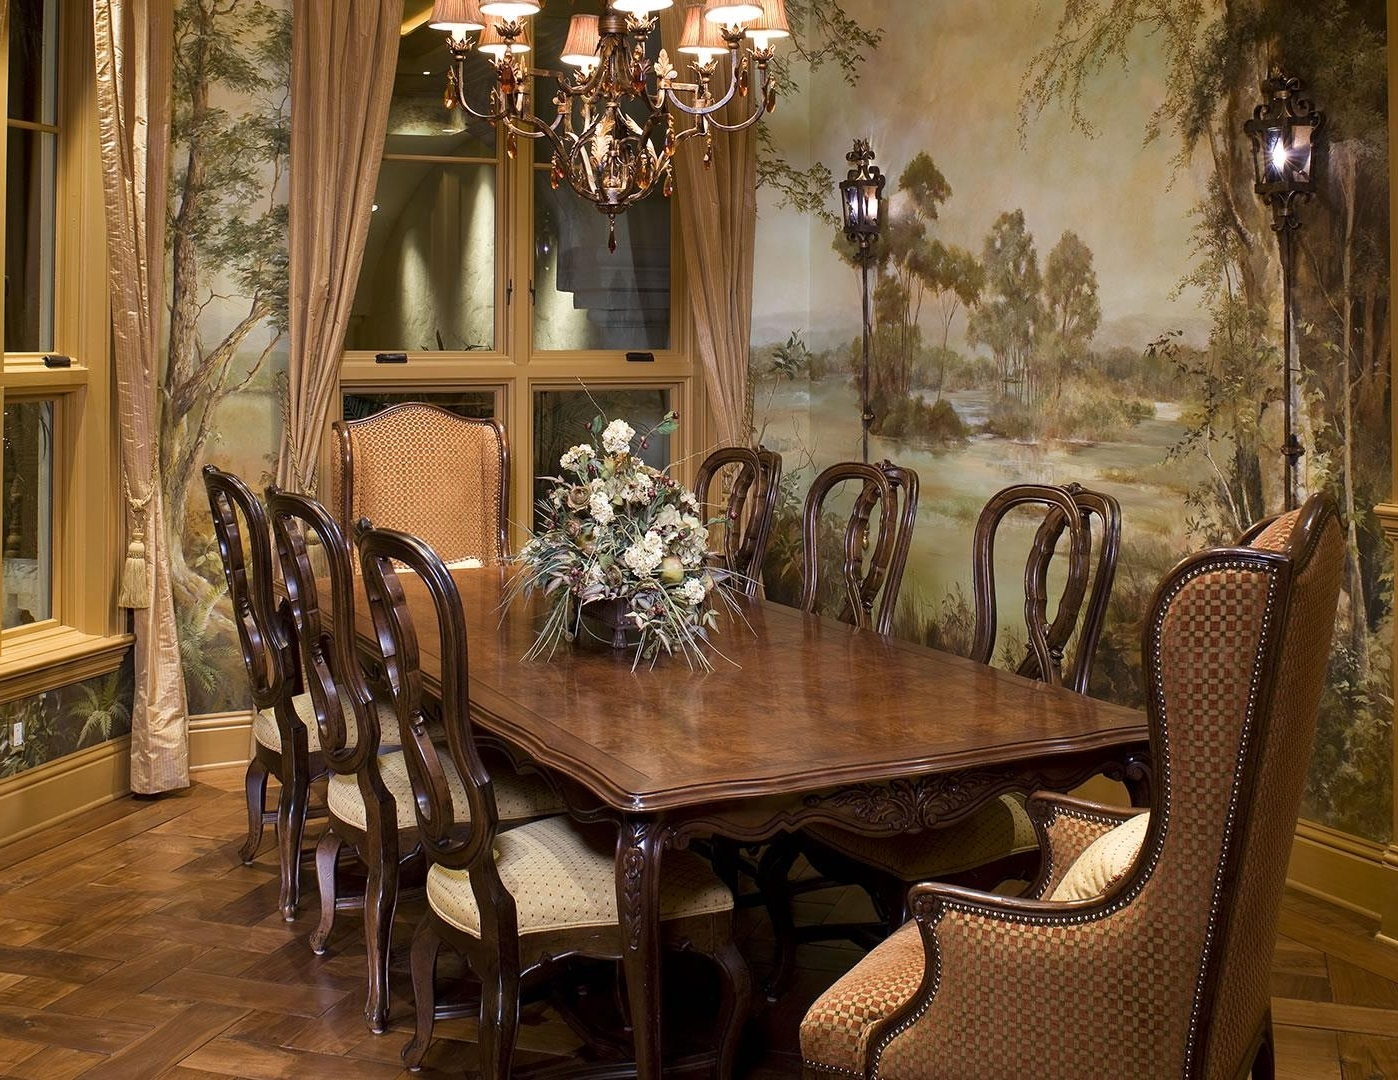 Formal Dining Room Wall Decor Remarkable 13 Wall Art For A Formal In Well Known Formal Dining Room Wall Art (View 11 of 15)